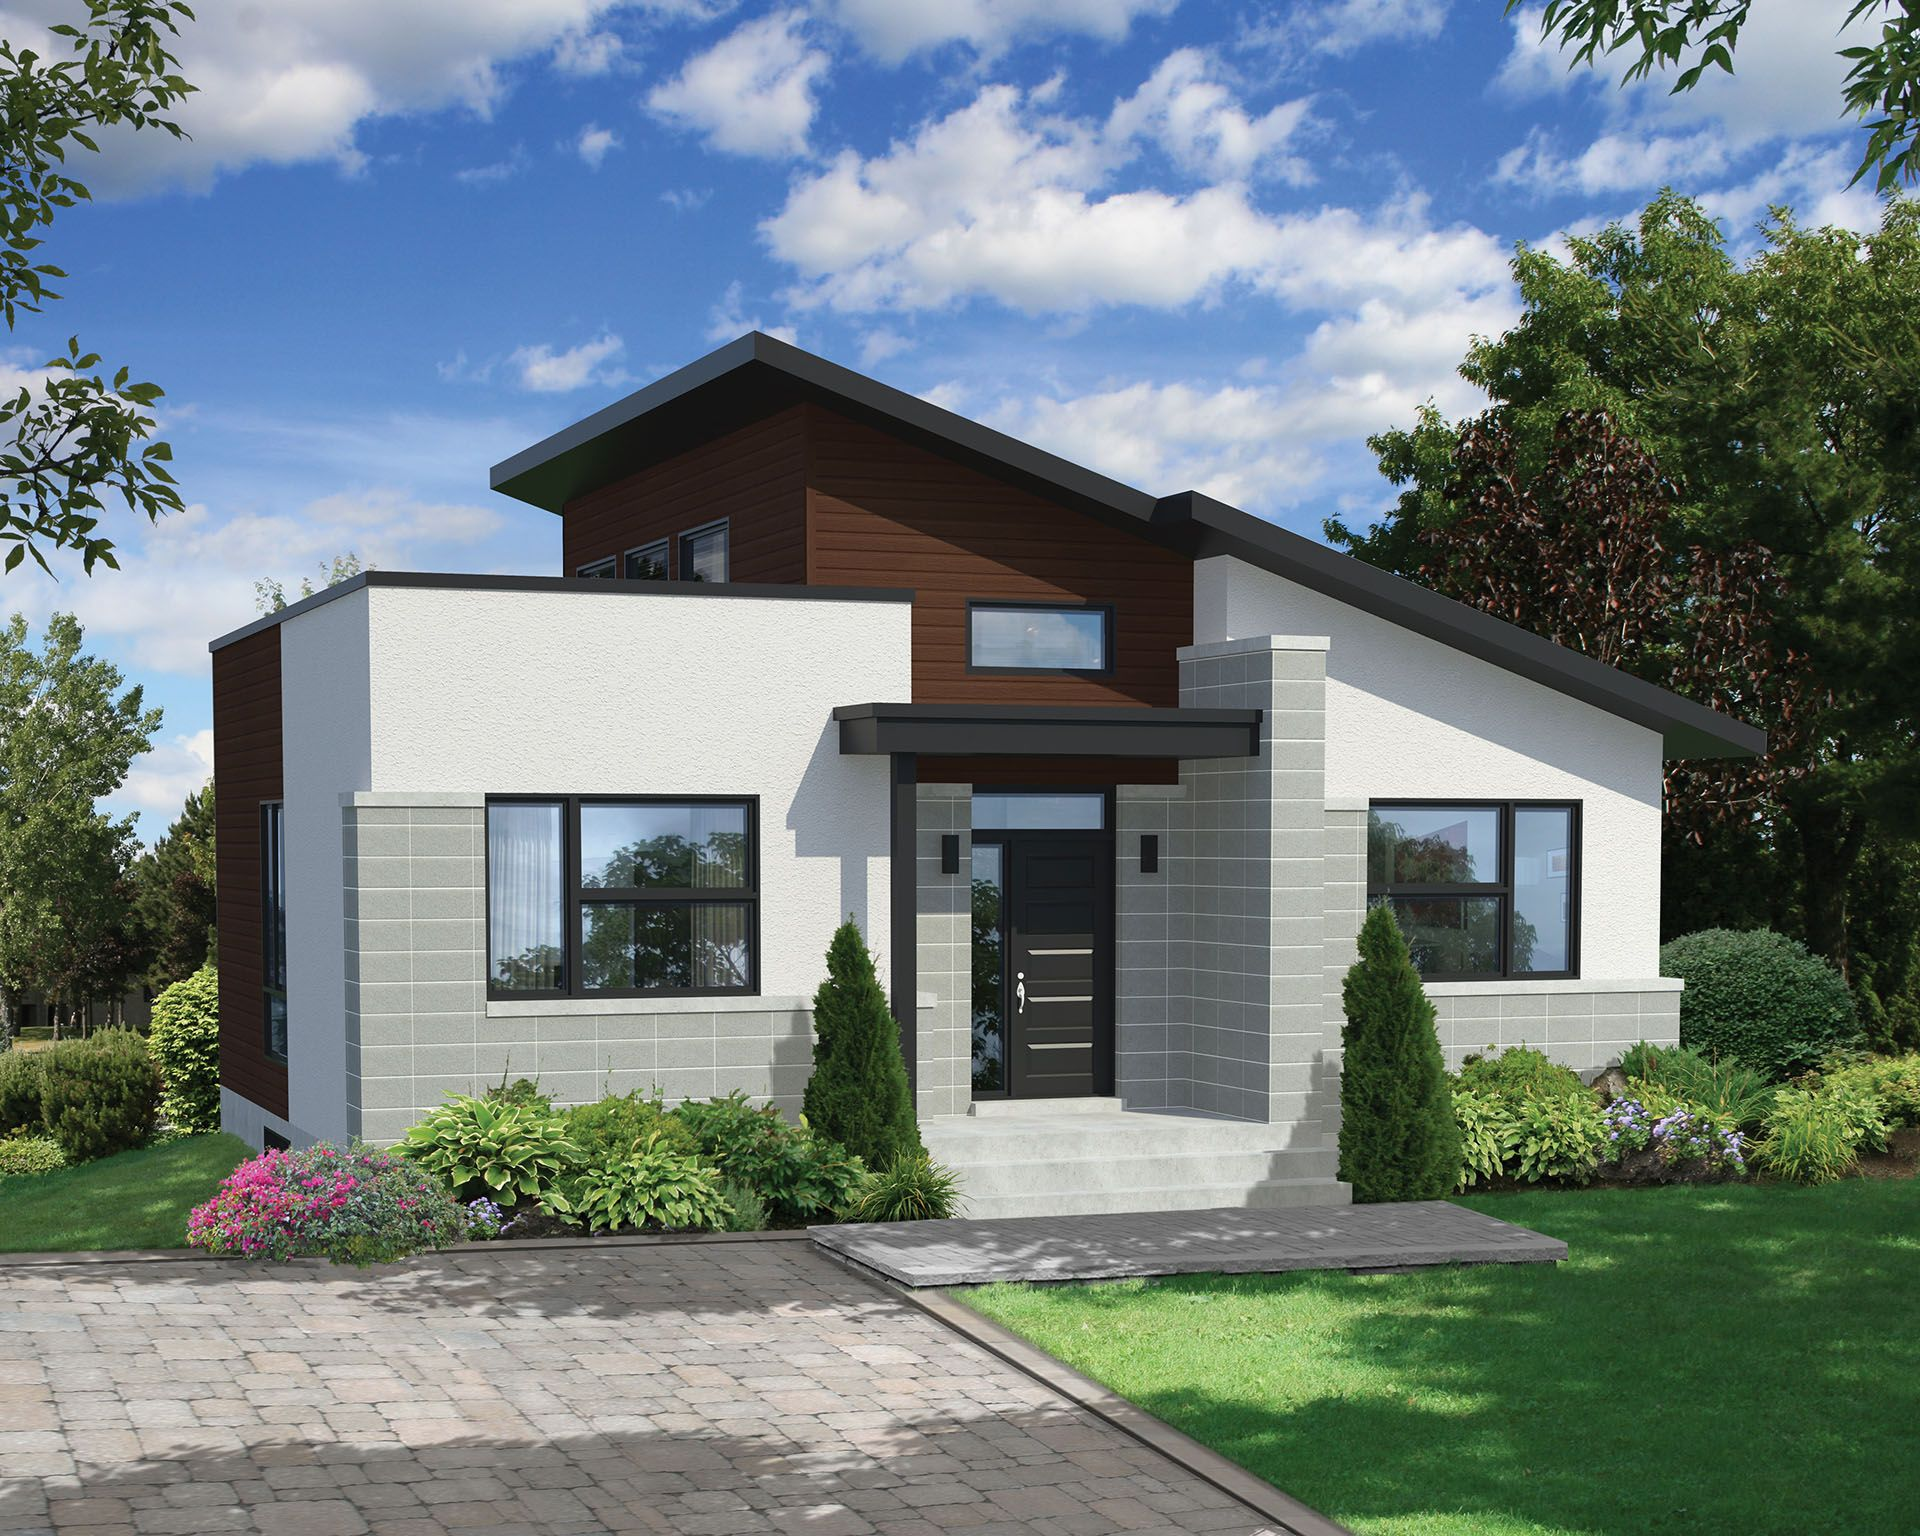 Bold and Compact Modern House Plan | Contemporary house ...